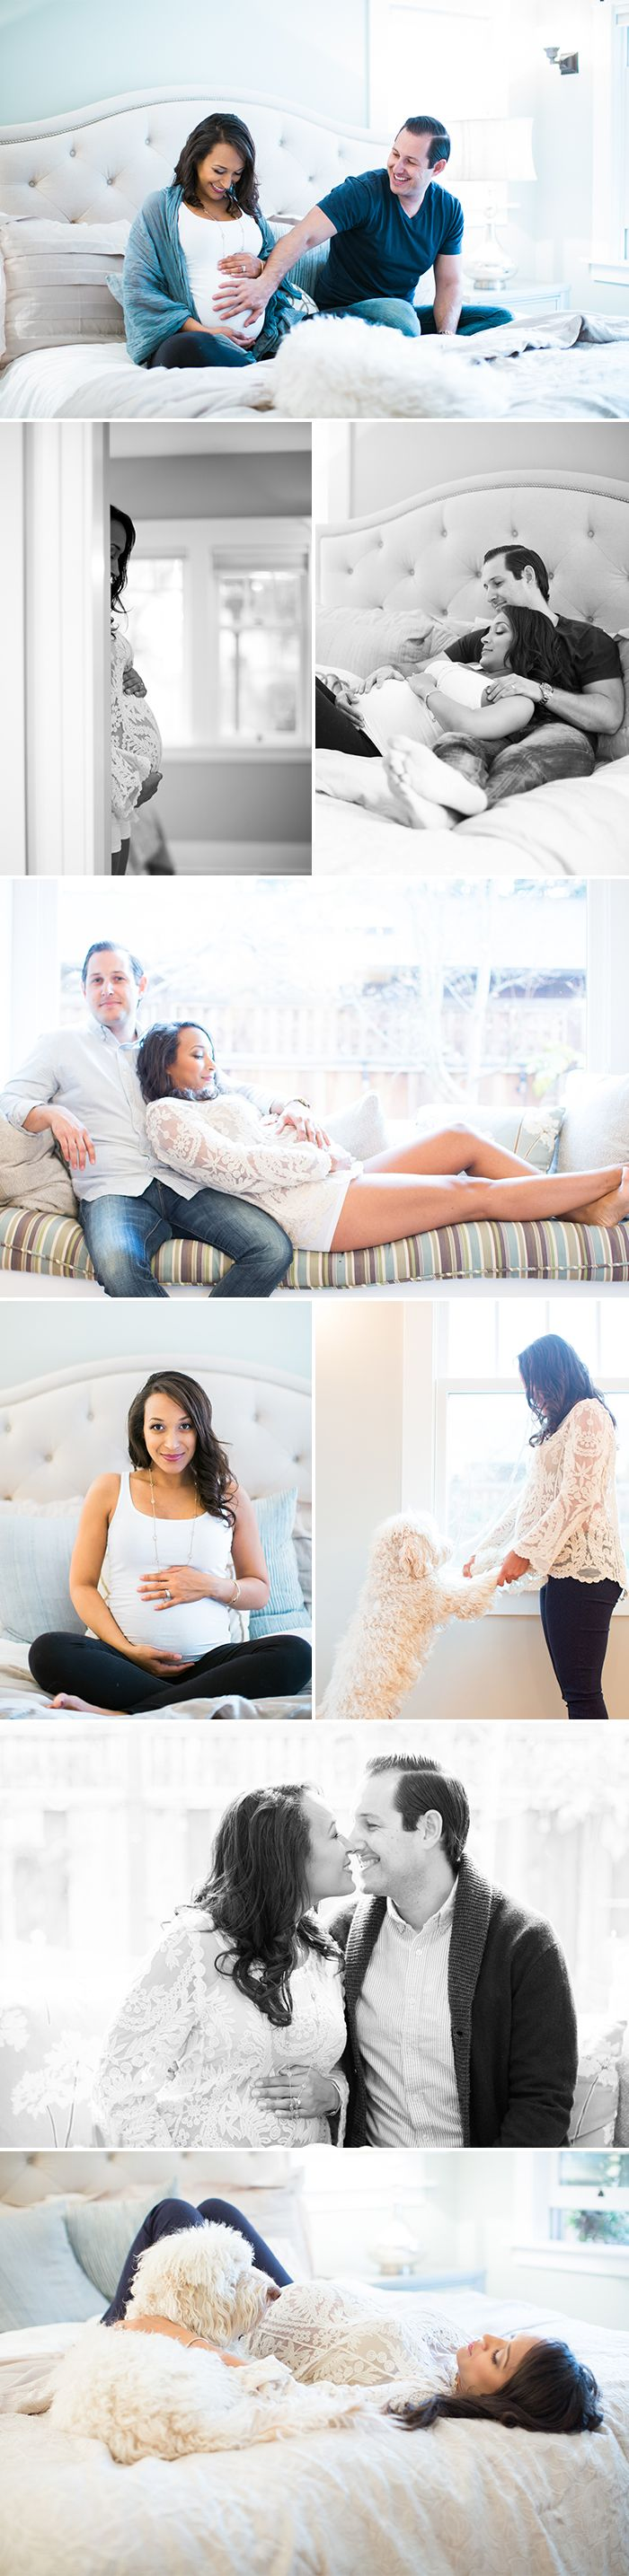 Love our at home maternity photos!